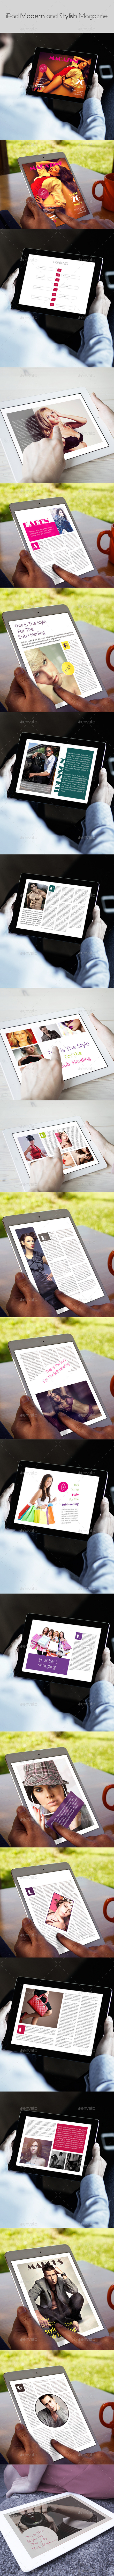 GraphicRiver iPad Modern and Stylish Magazine 9950257